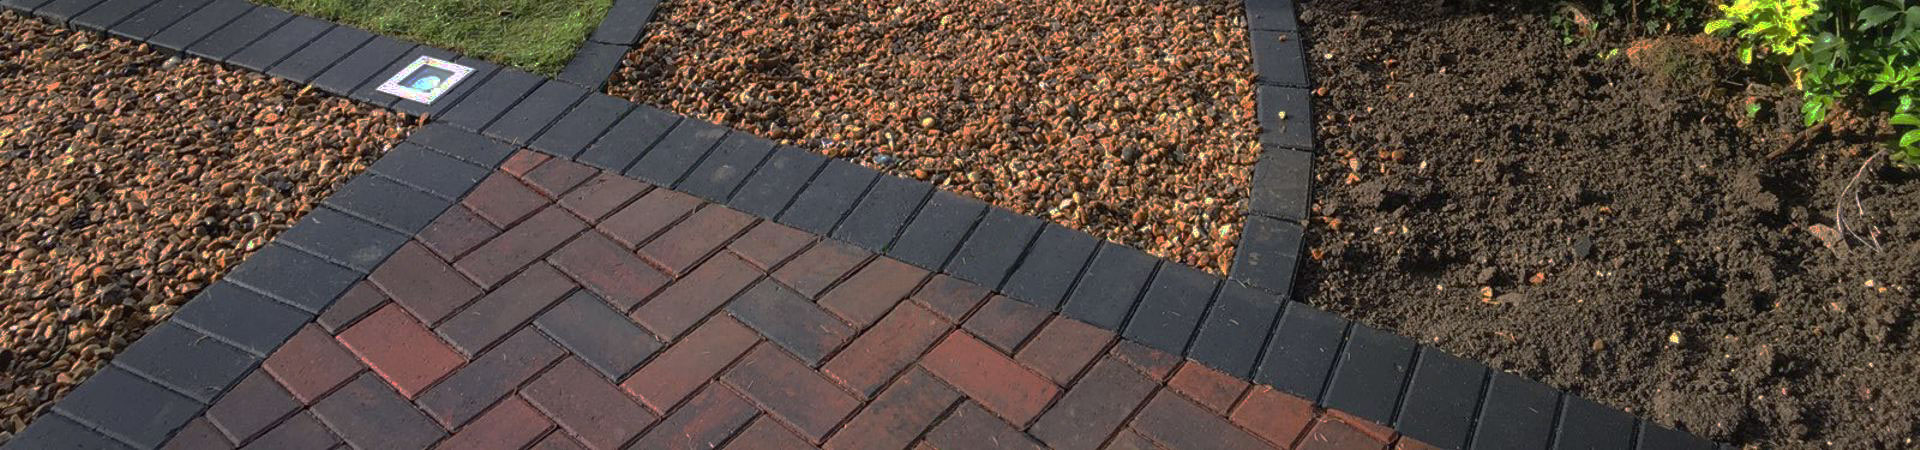 Driveways, Patios and Paving